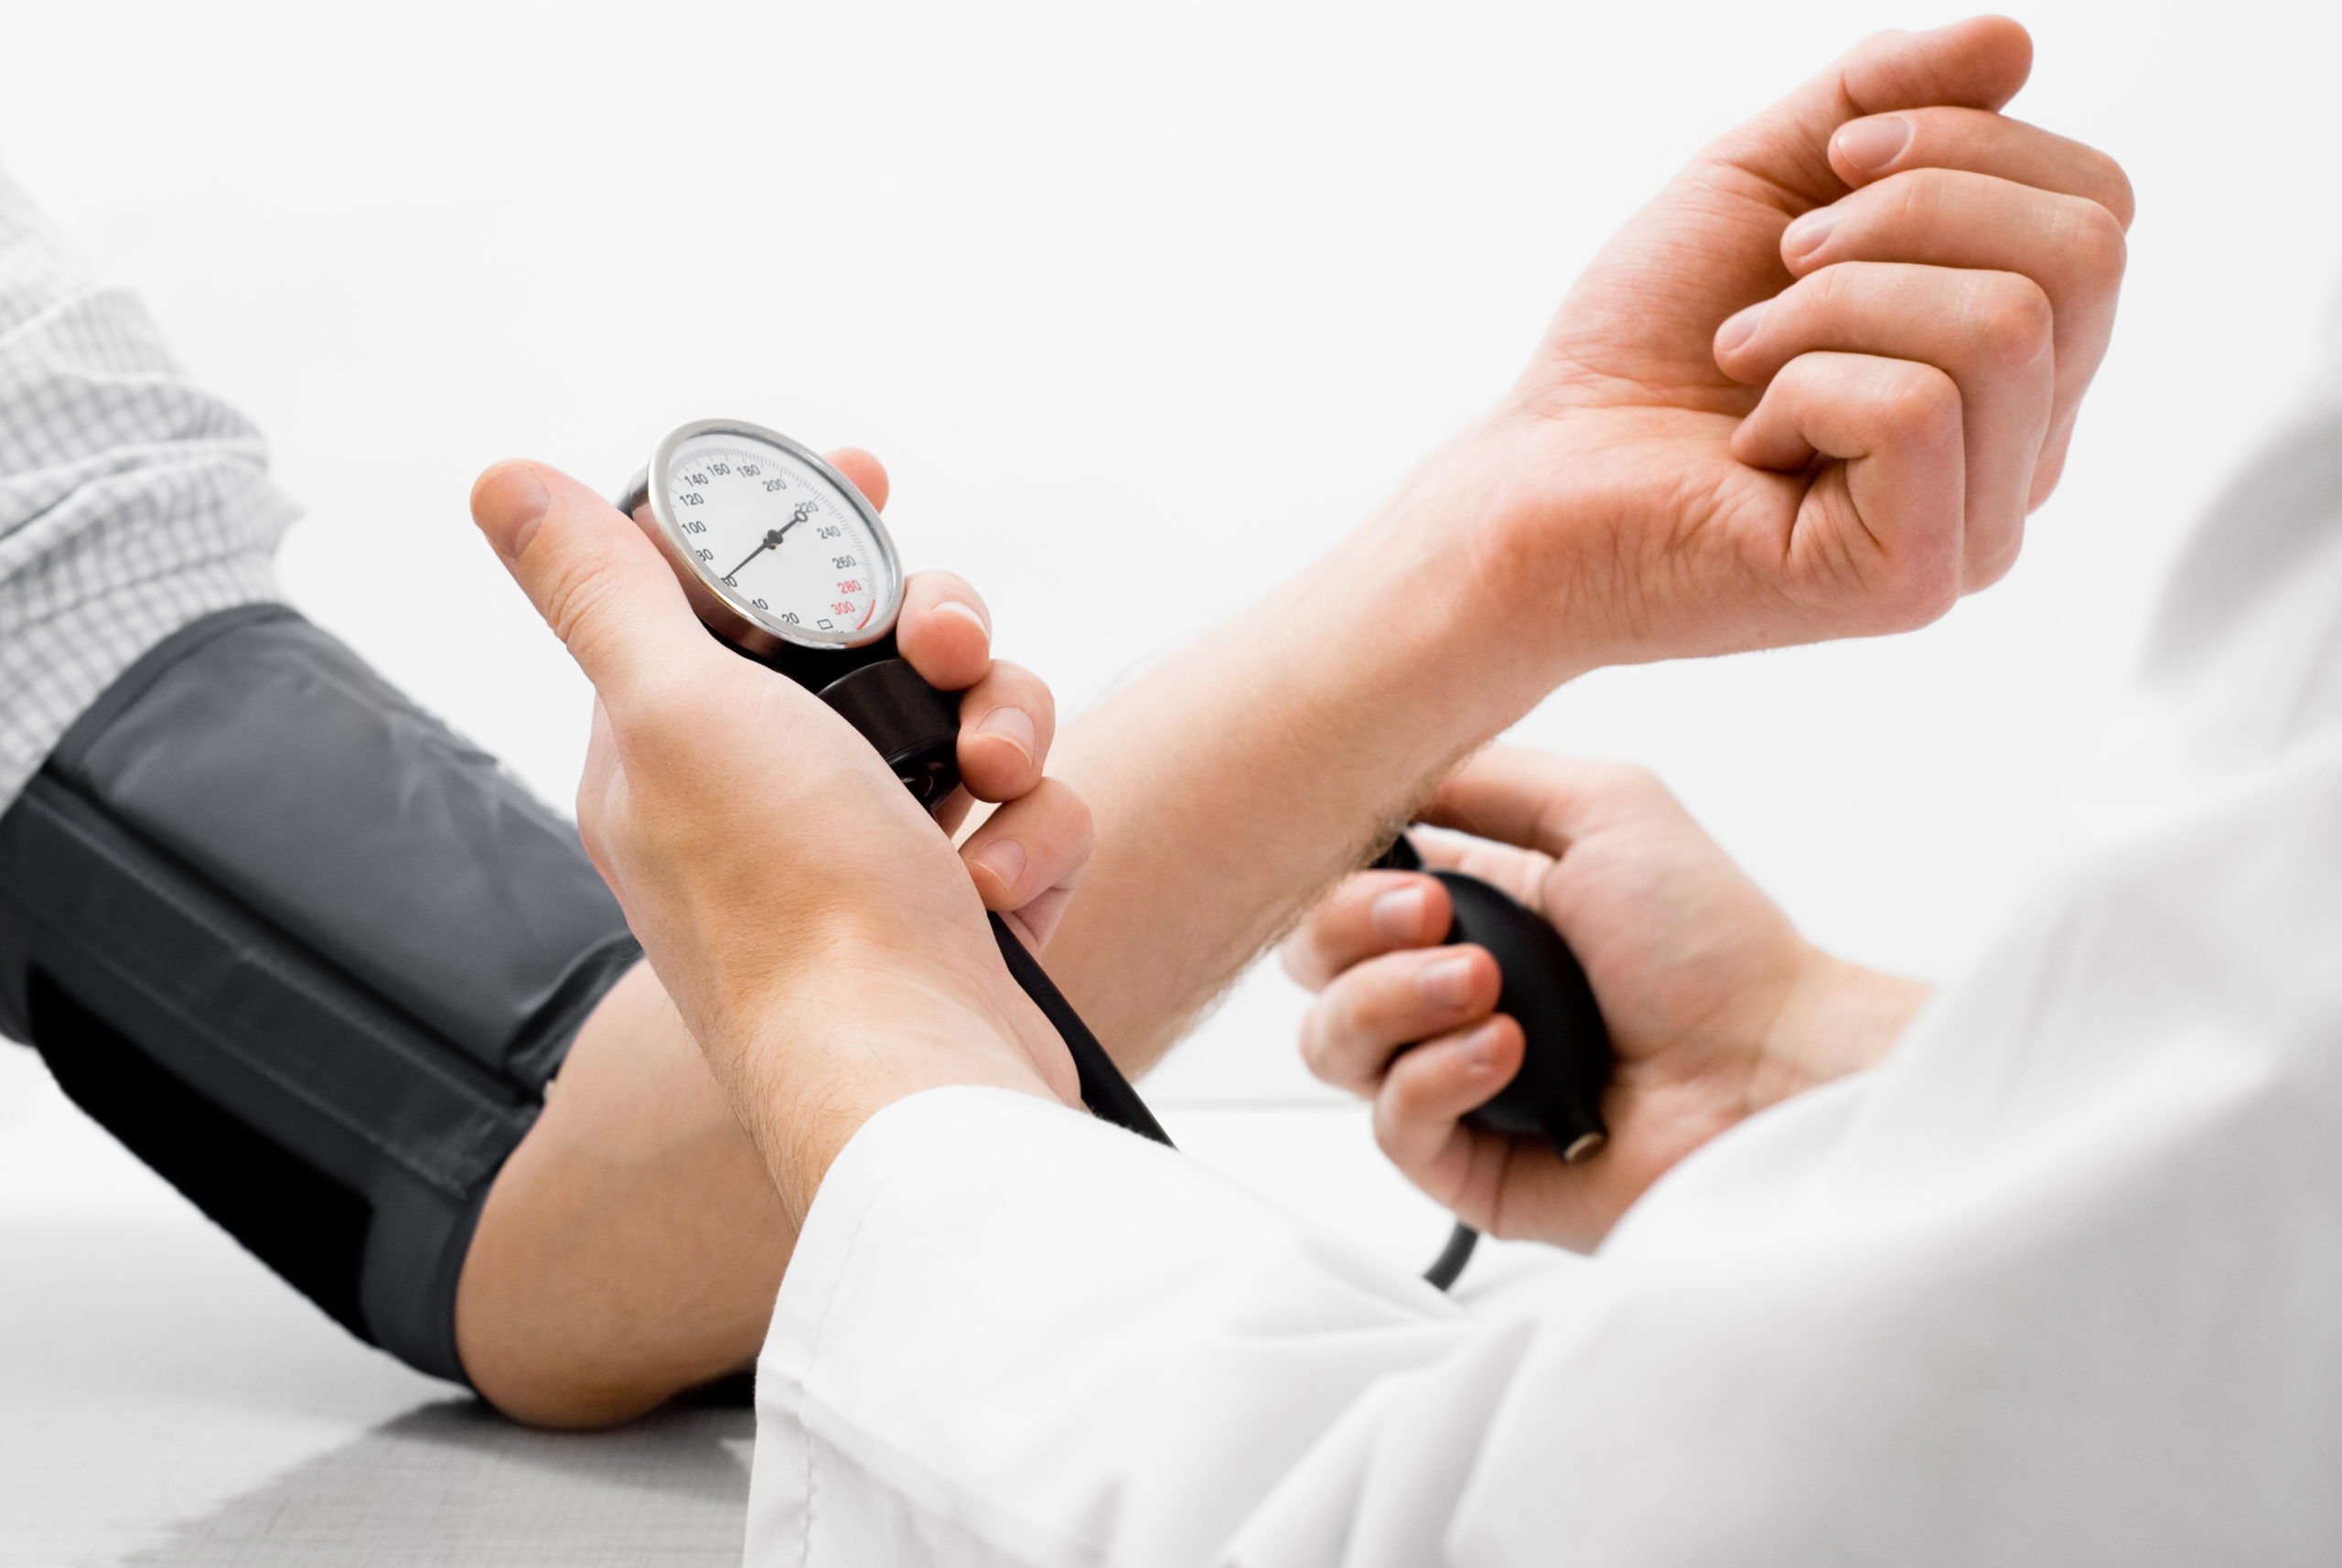 doctor taking blood pressure of insurance and medicaid patient